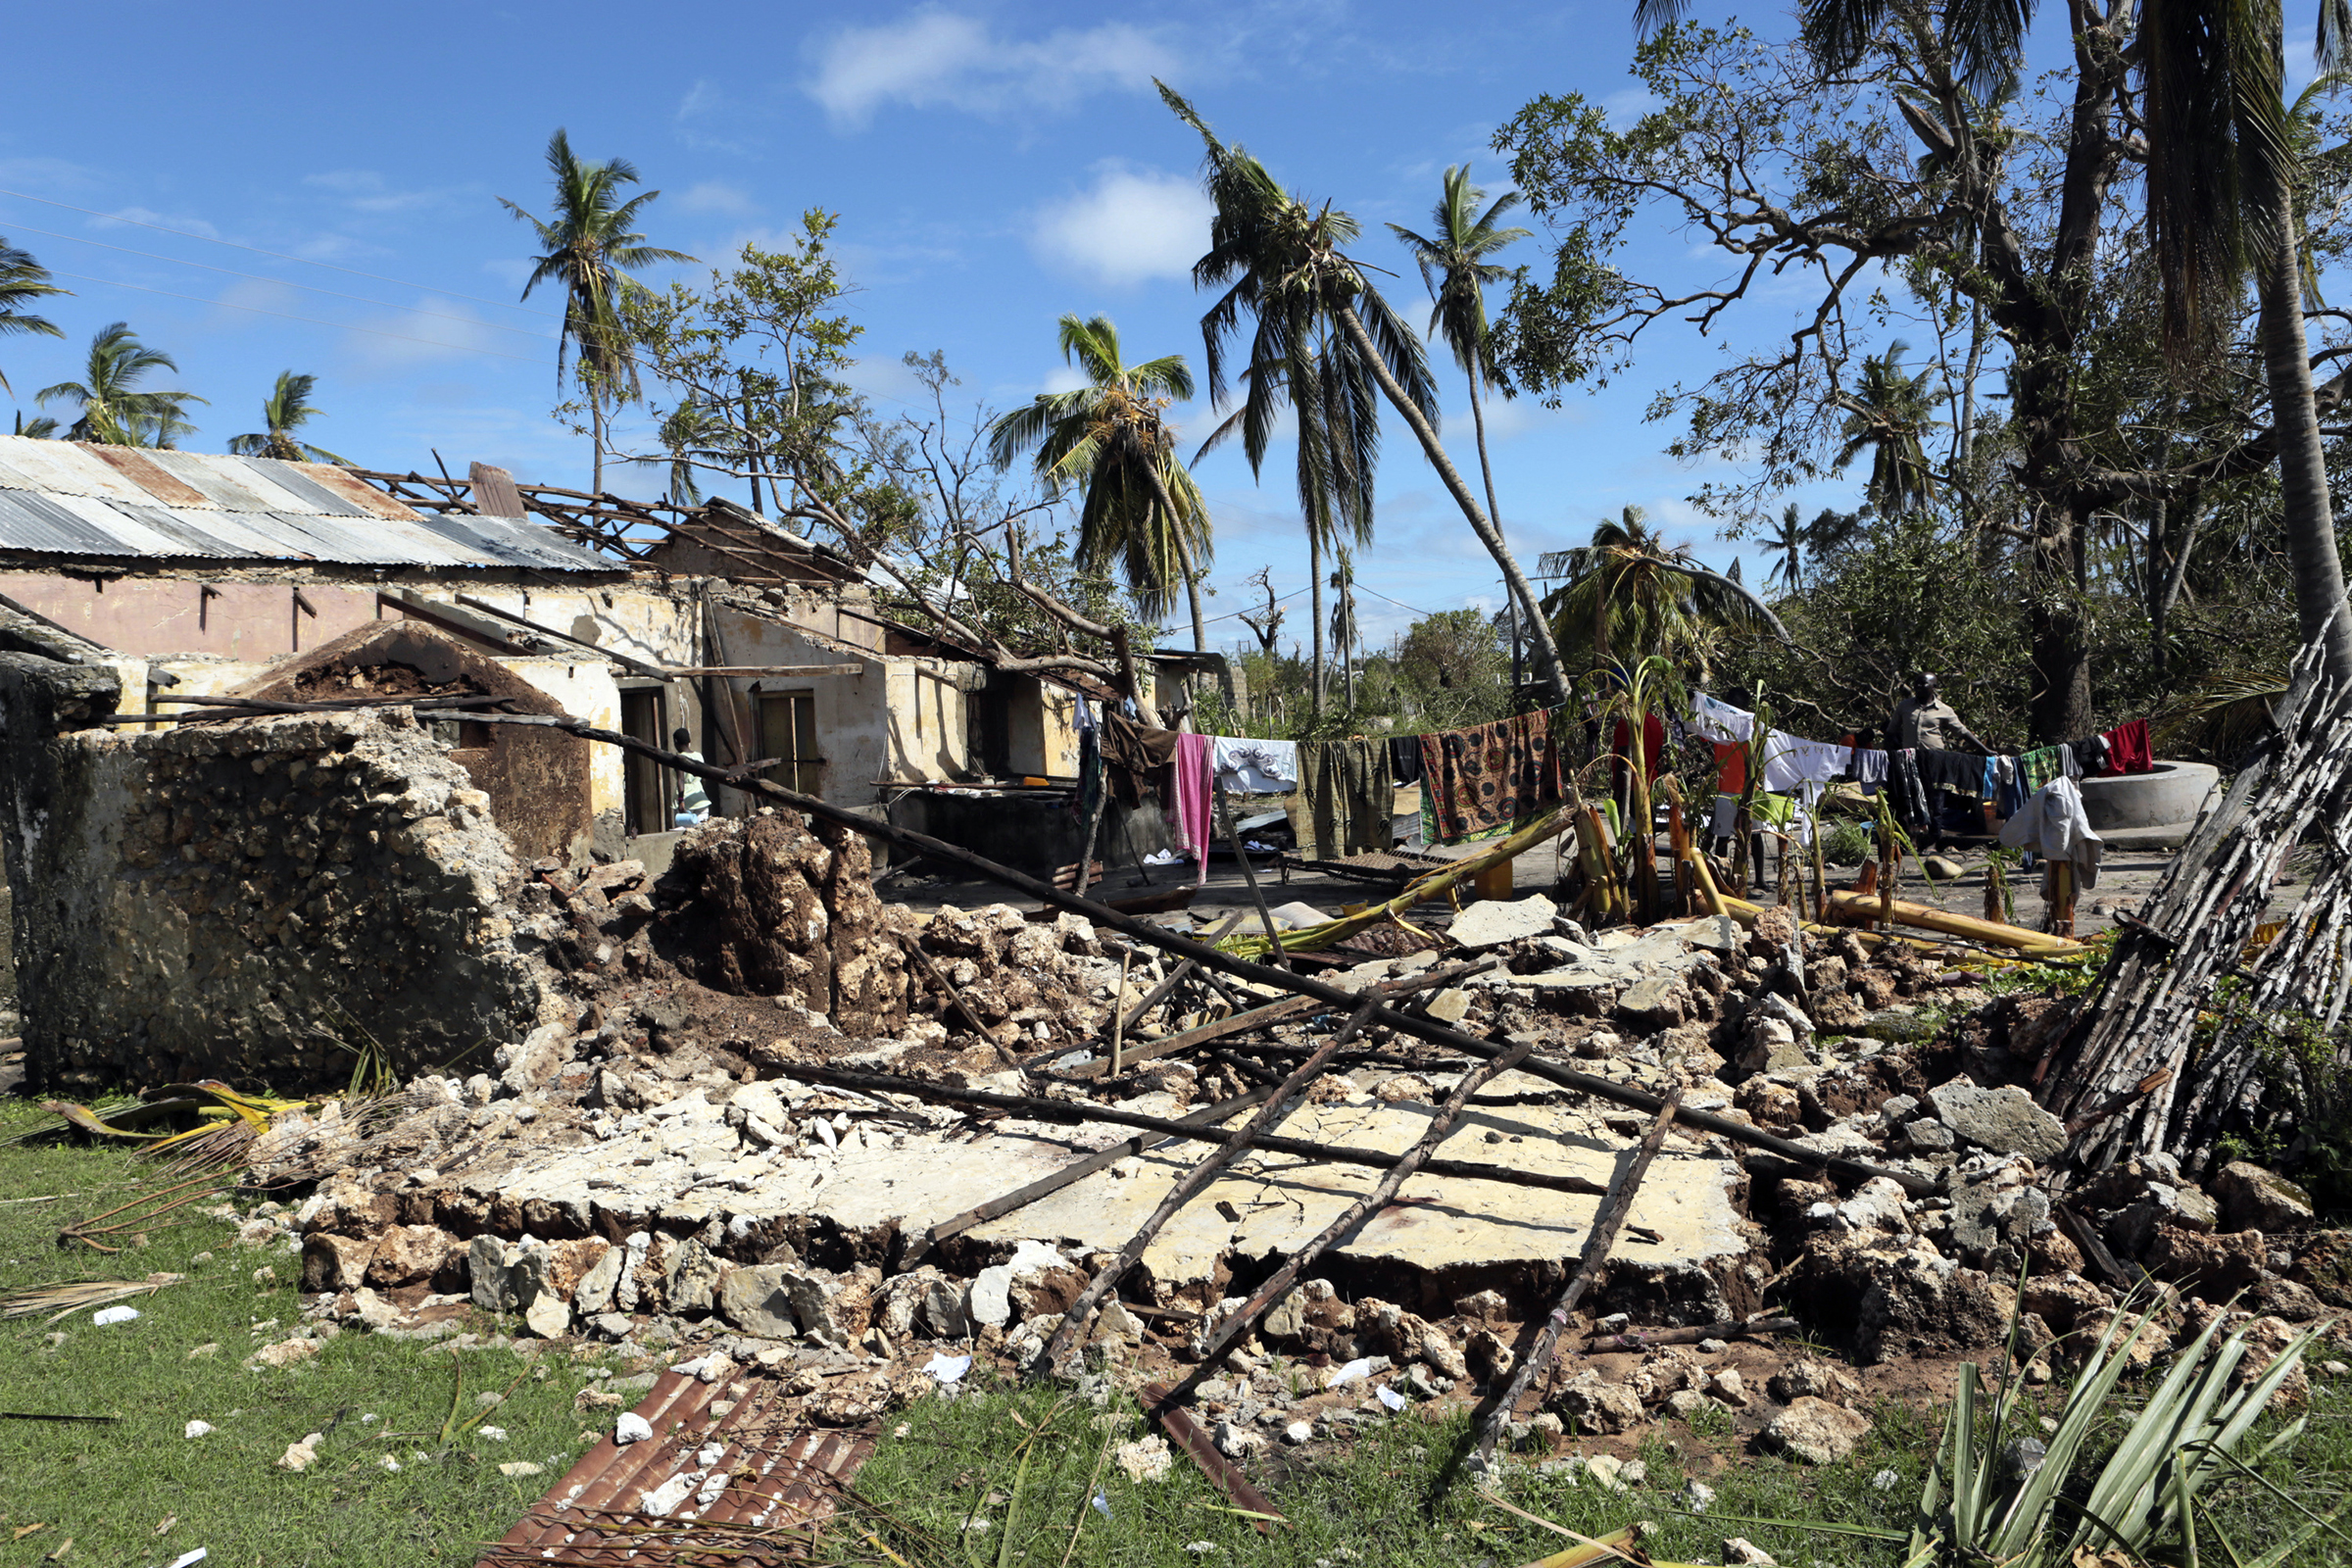 Clothes are seen on a drying line at a house damaged by Cyclone Kenneth in Ibo island north of Pemba city in Mozambique on May, 1, 2019.